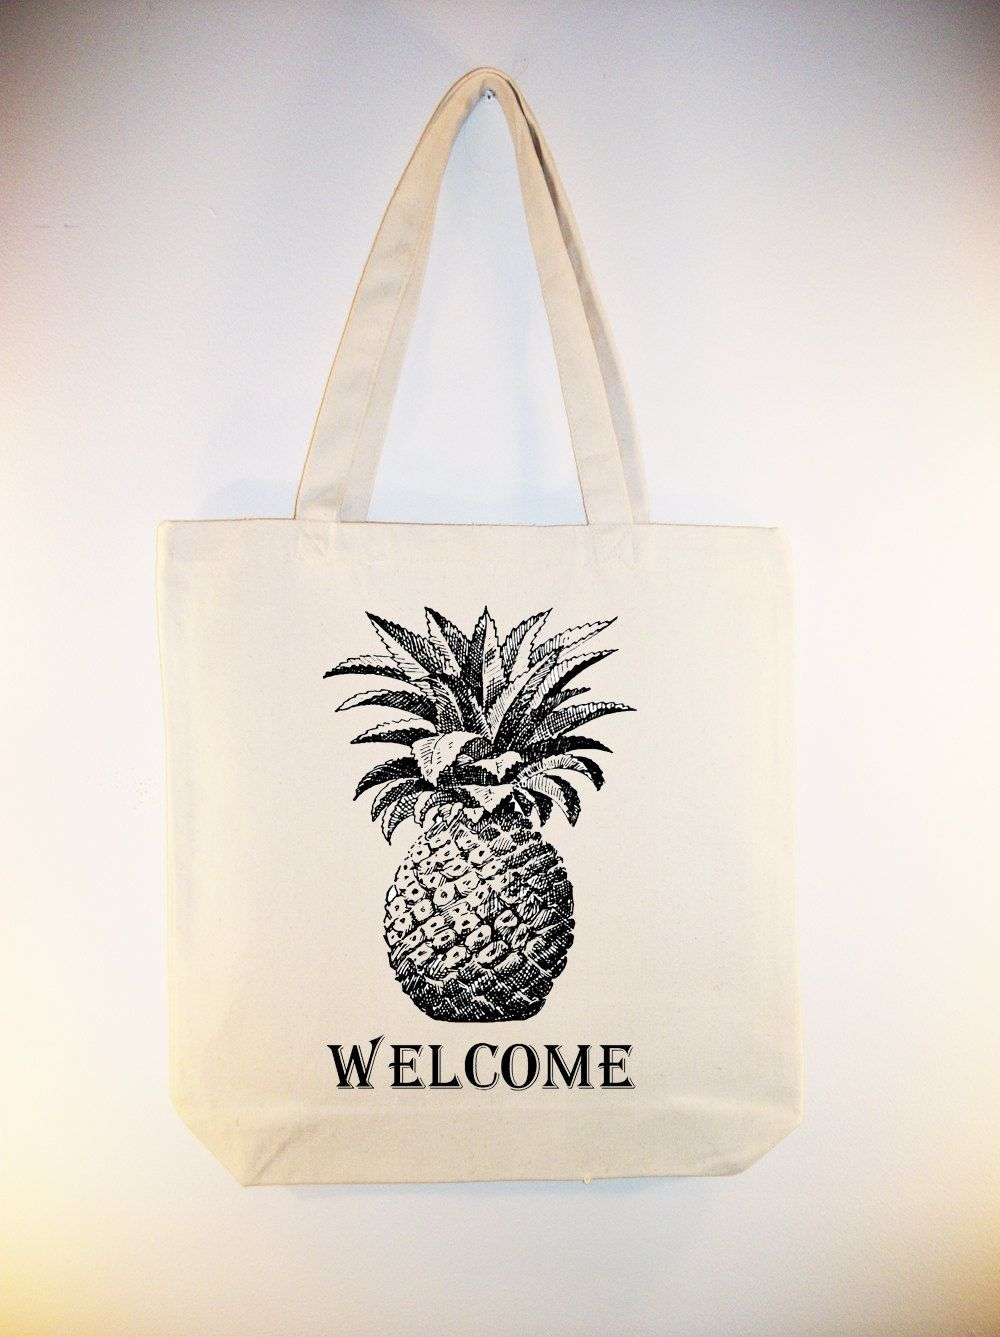 Pineapple Welcome Illustration on 15x15 Canvas Tote - larger zip top tote style and personalization available, print in ANY COLOR